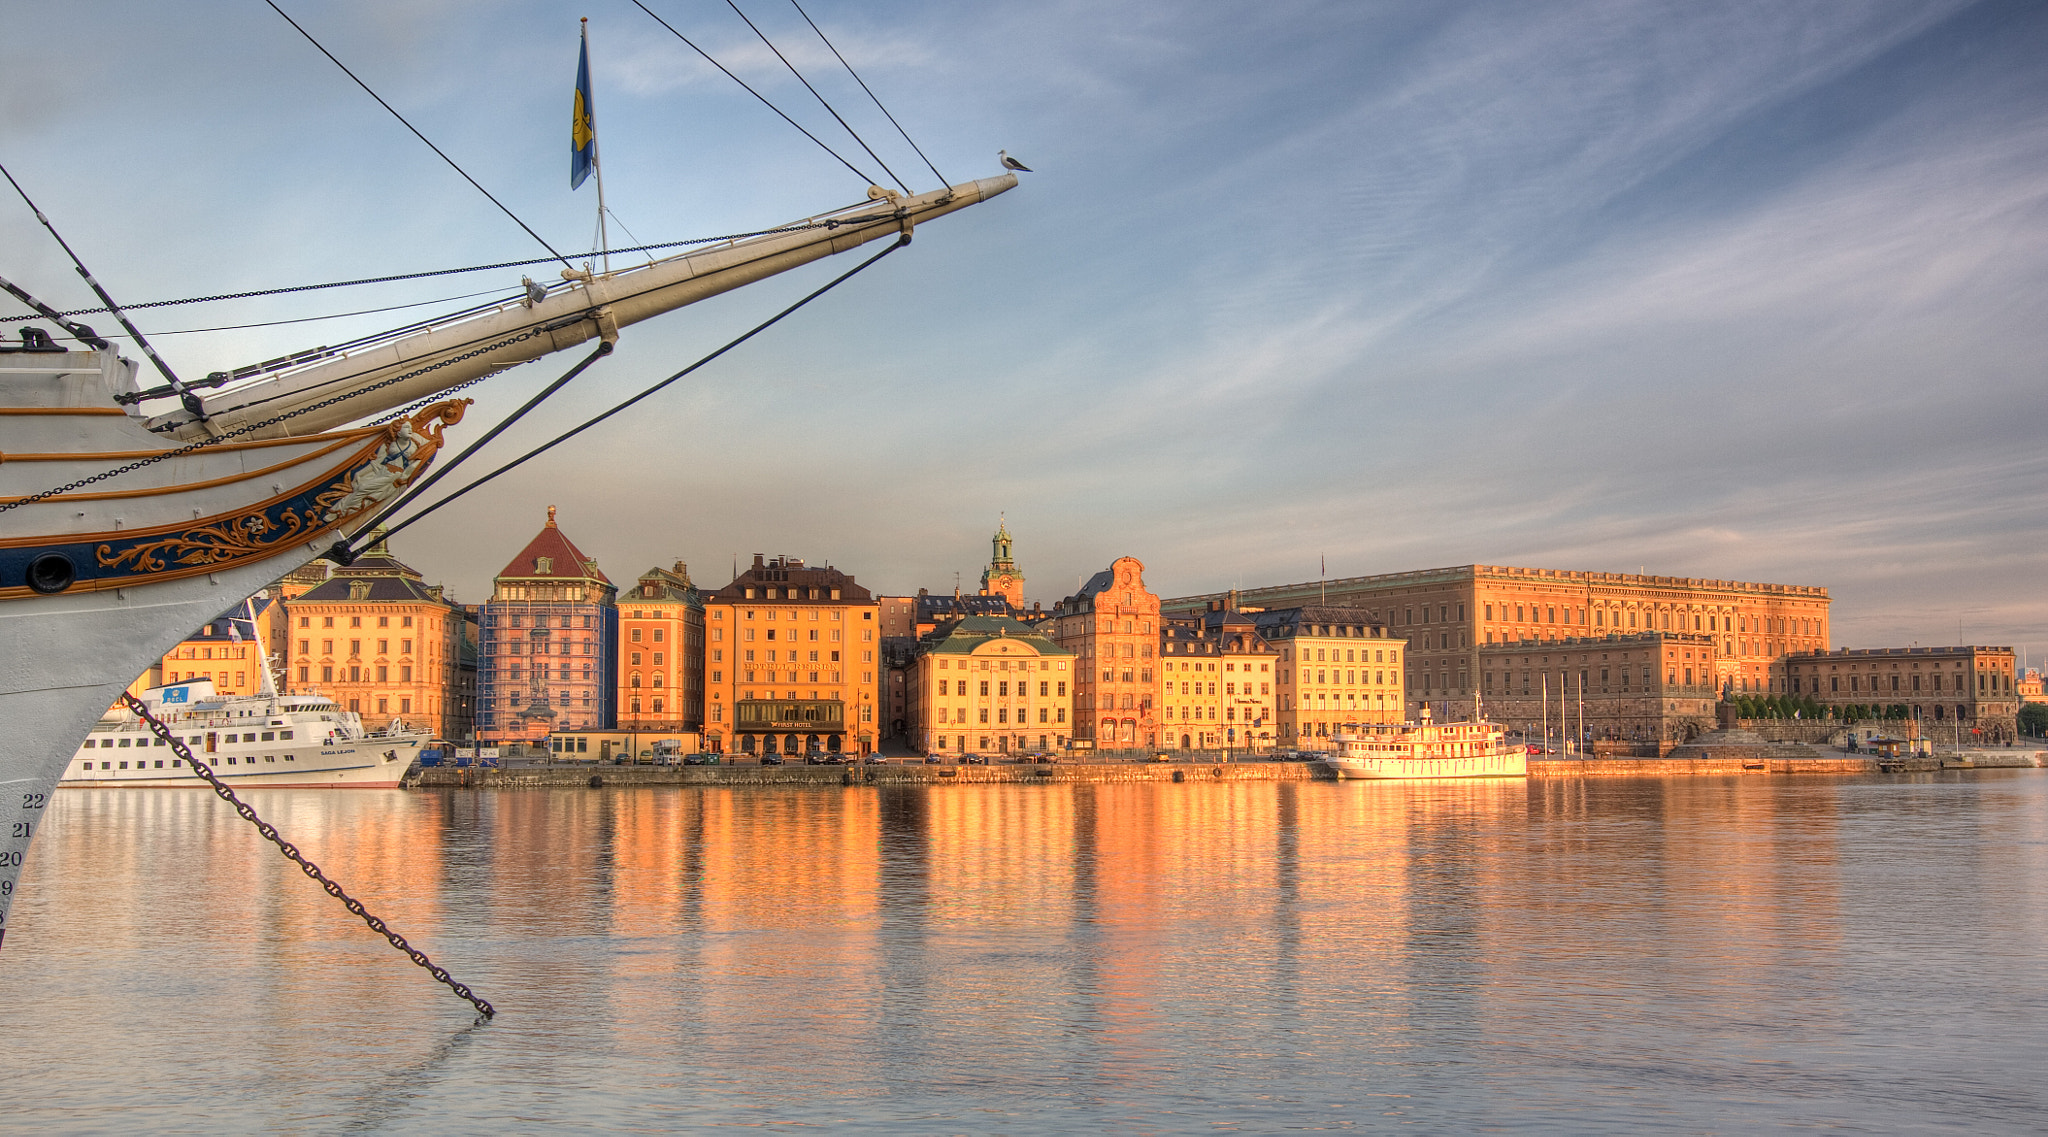 Photograph Early morning in Stockholm Old Town by Michael Cavén on 500px